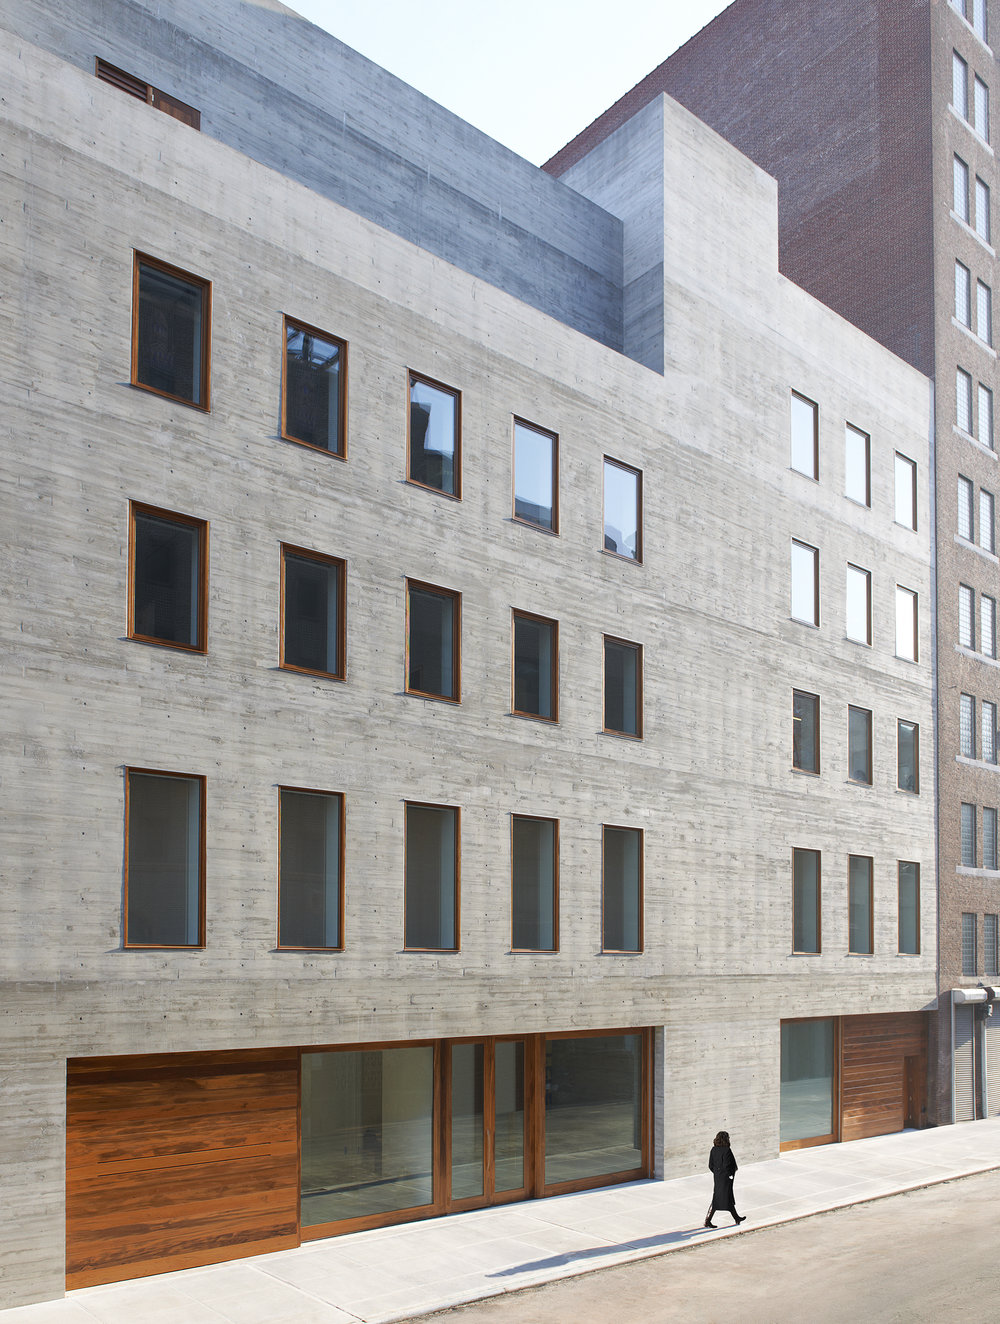 David Zwirner 20th Street, New York, NY, Selldorf Architects. Photo: Jason Schmidt, courtesy of Selldorf Architects.